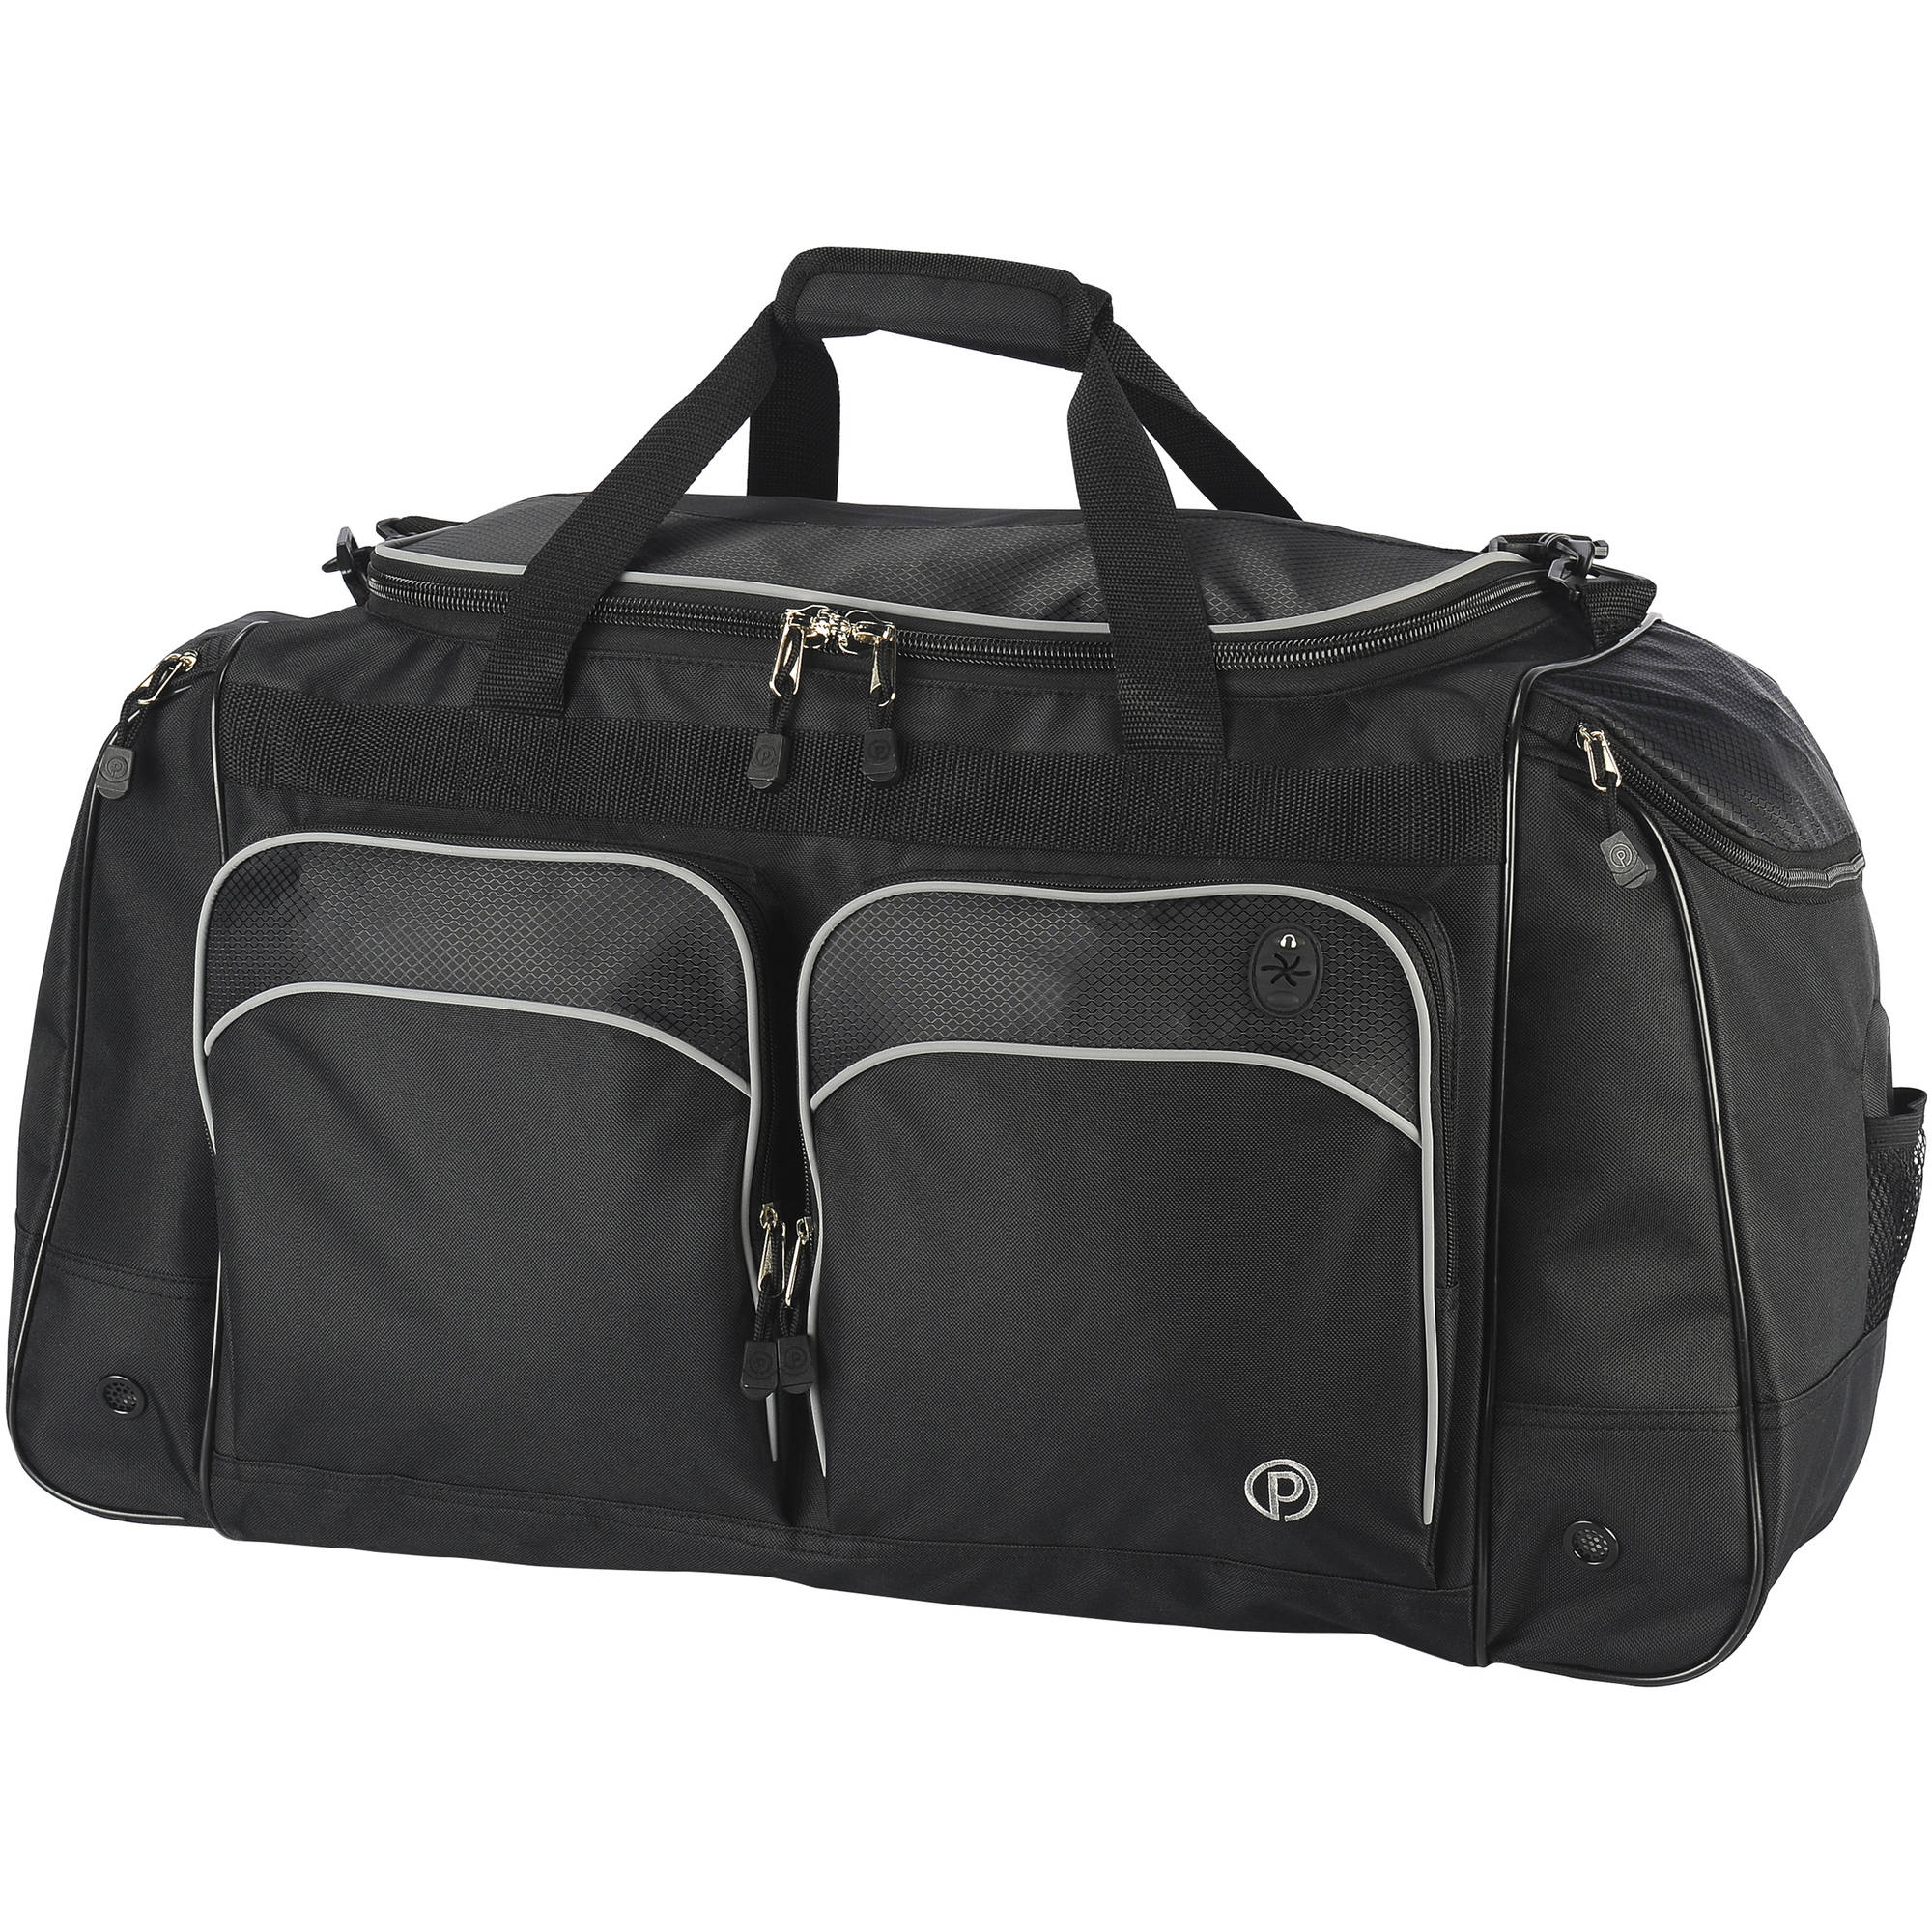 "Protege 28"" Sports Duffel, Black"